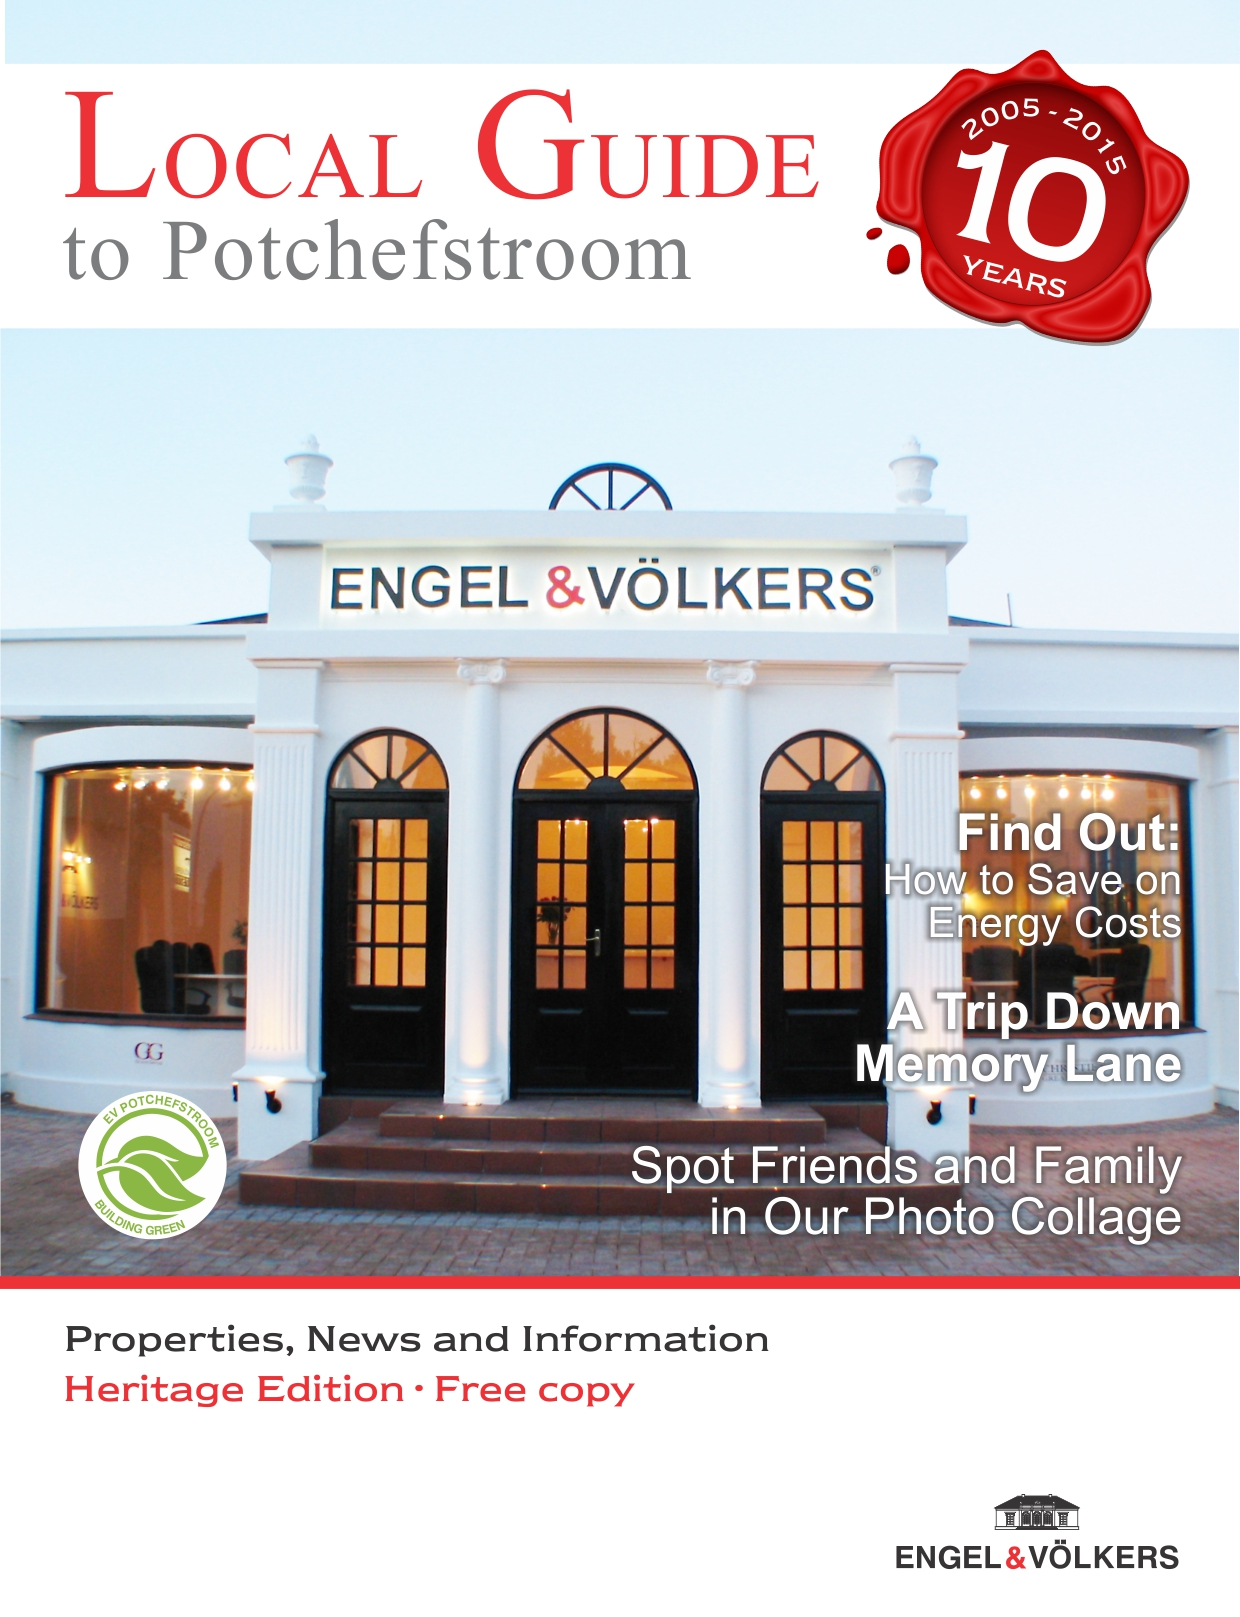 Local Guide to Property in Potchefstroom